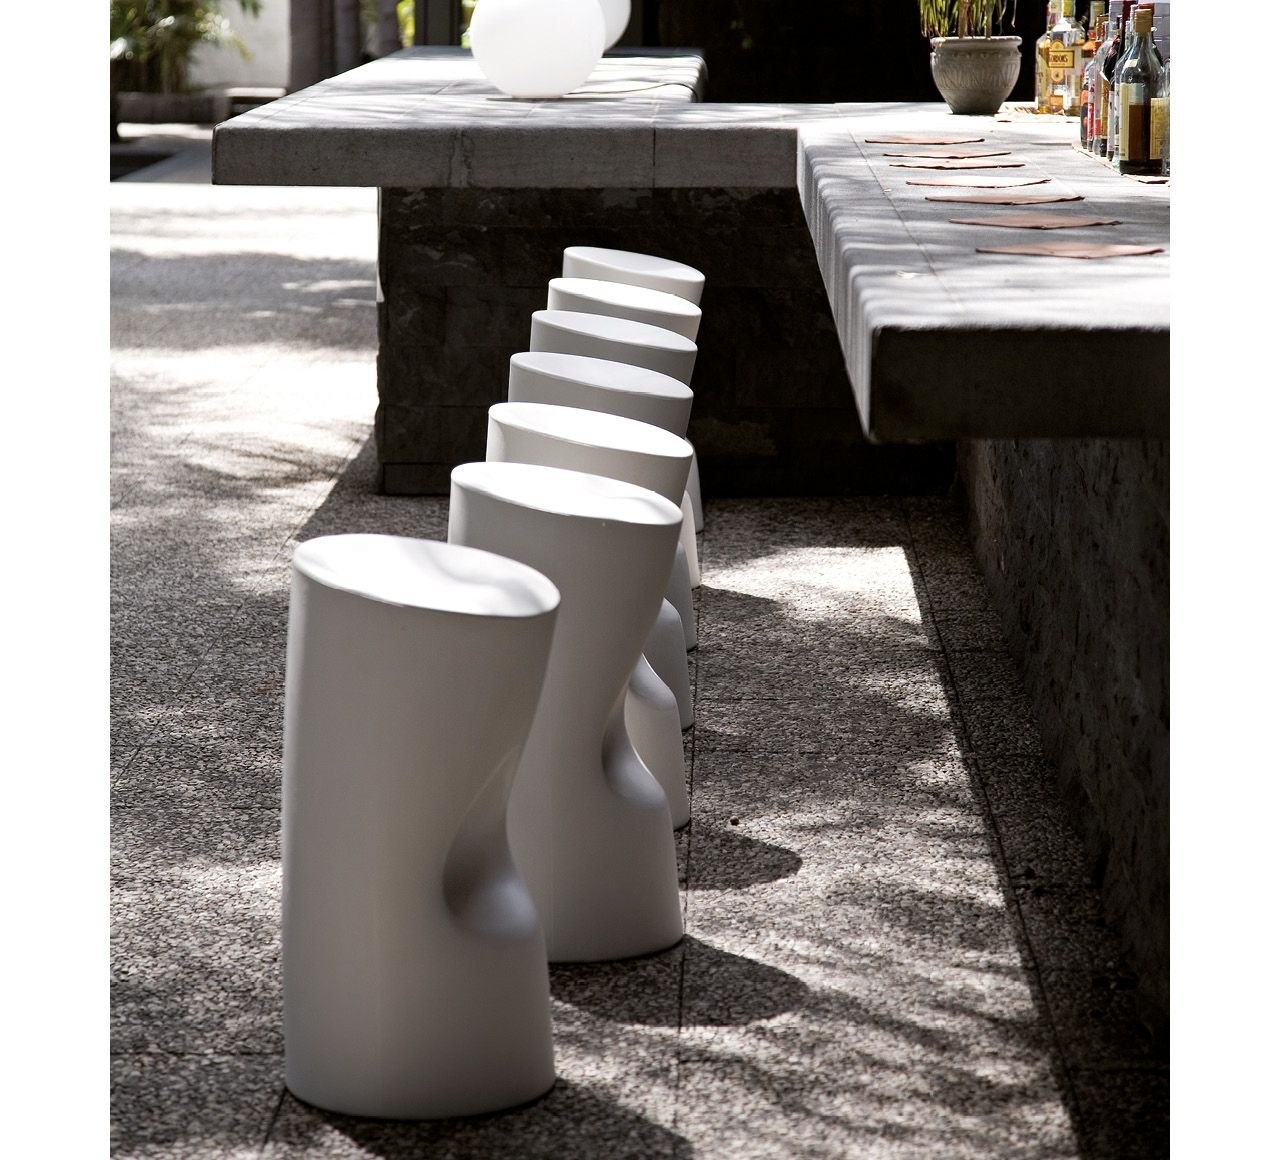 Tokyo-Pop Stool from Driade